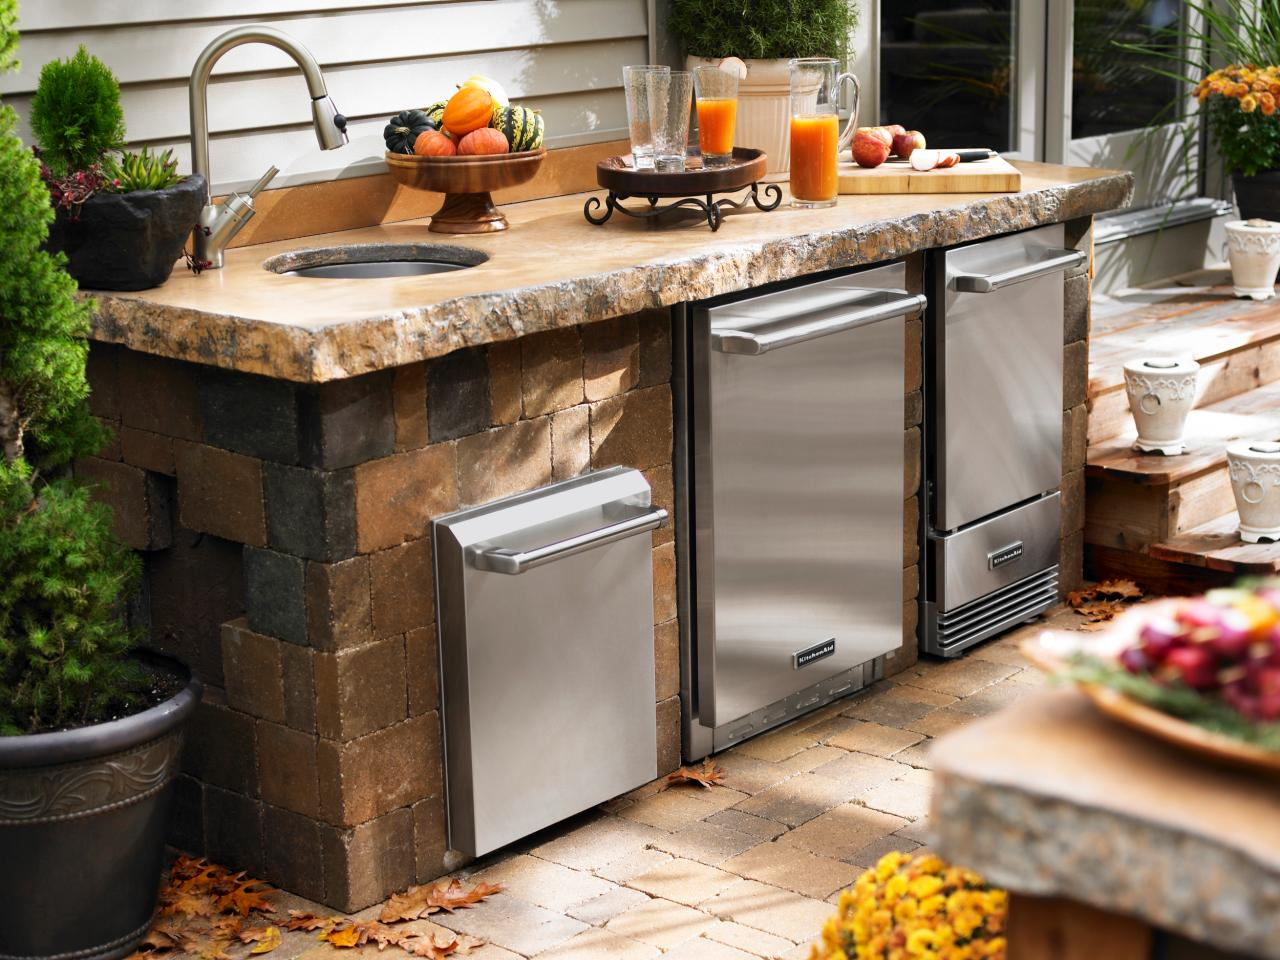 Outdoor Design Ideas 20 wow worthy hardscaping ideas Outdoor Kitchen Design Ideas Pictures Tips Expert Advice Hgtv